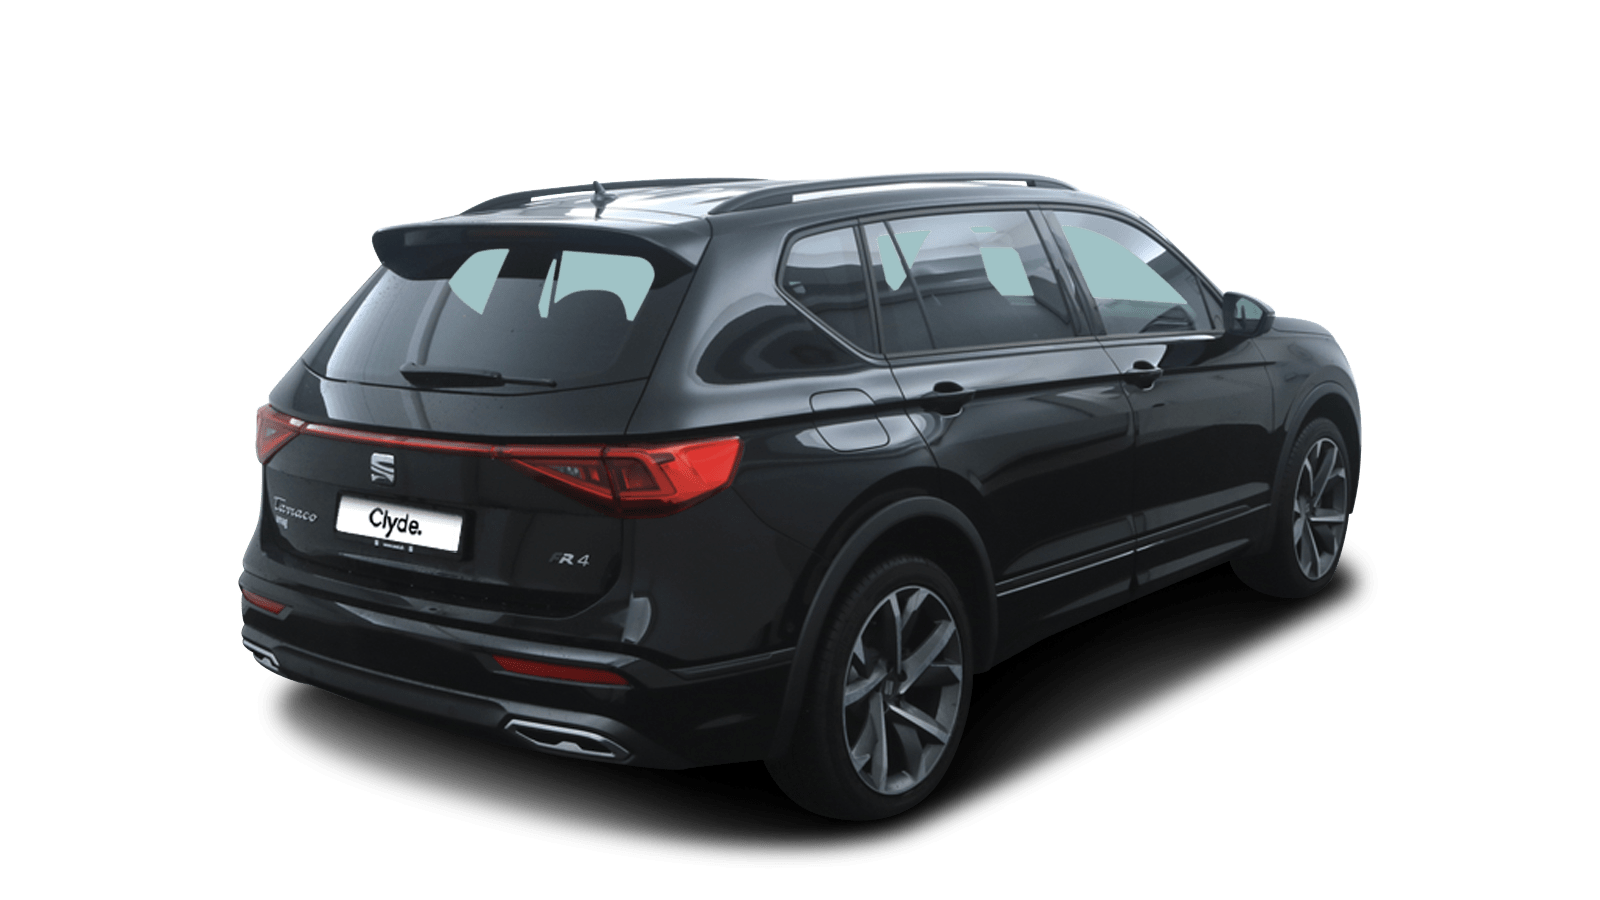 SEAT Tarraco Black back - Clyde car subscription